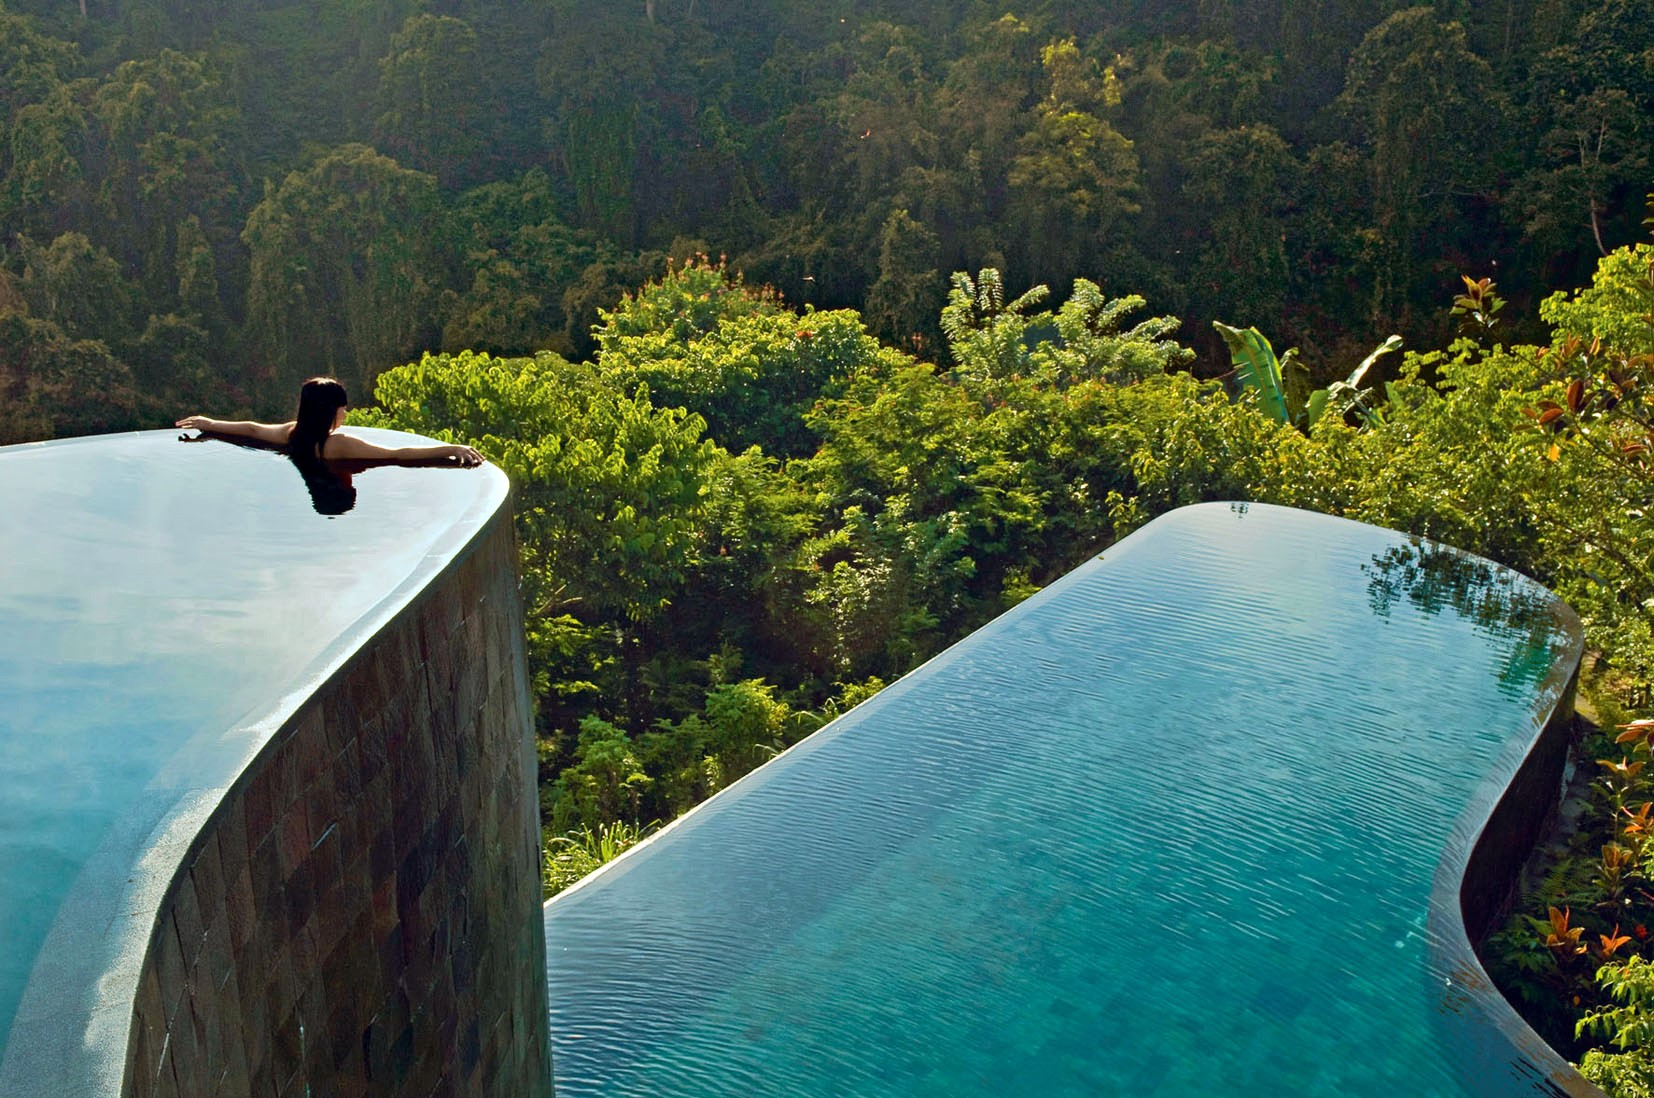 Creating the most unforgettable memories at Hanging Gardens